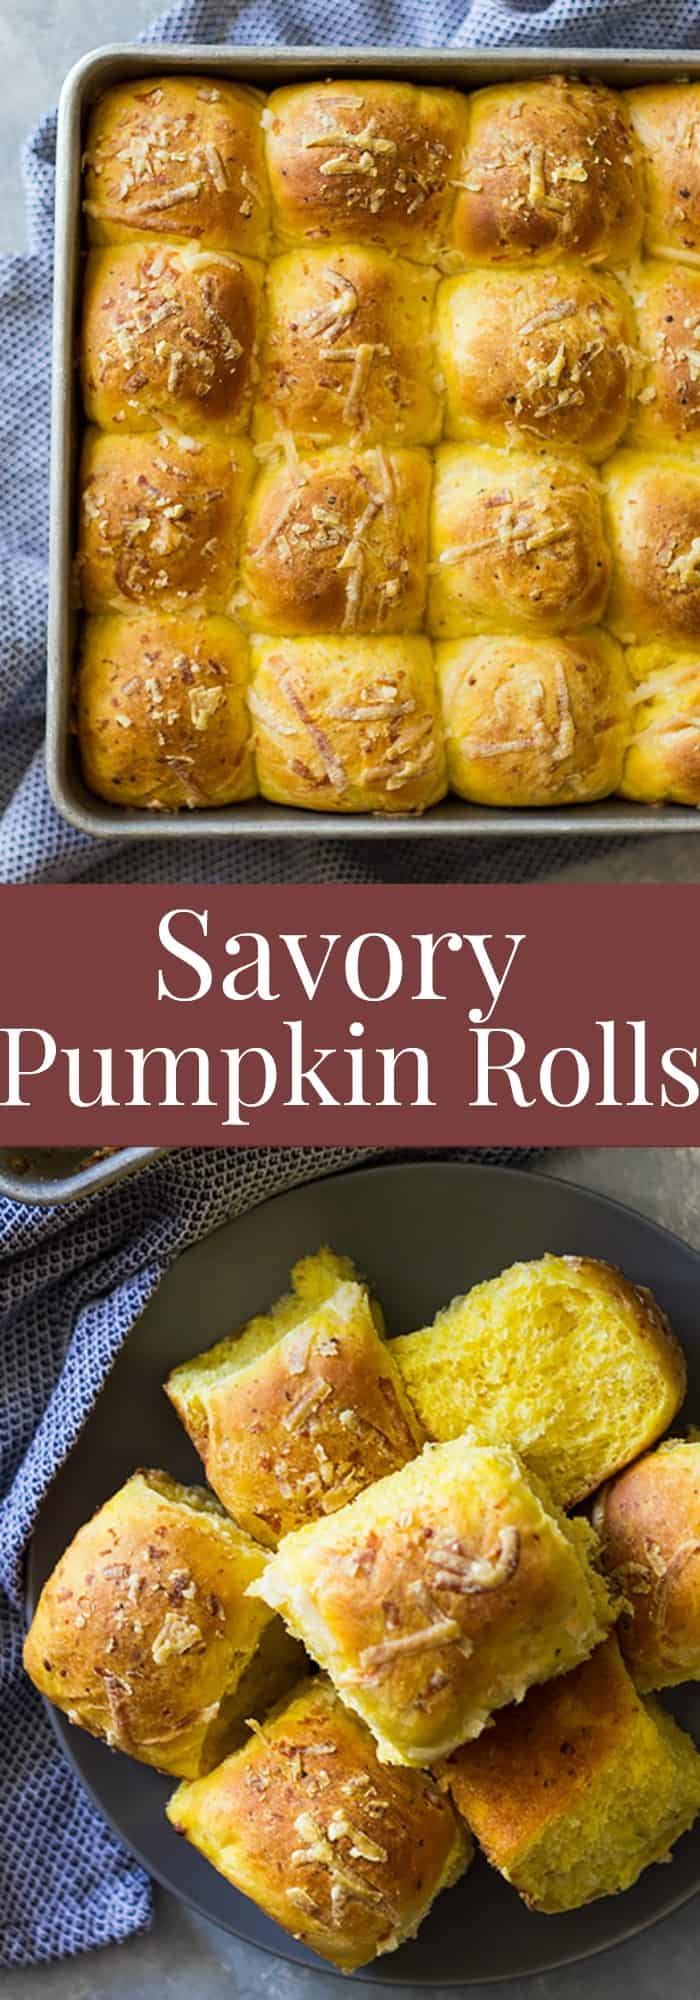 These Savory Pumpkin Rolls will be a great addition to your dinner table. Fluffy light biscuits made with pumpkin, rosemary and Parmesan cheese. | www.countrysidecravings.com